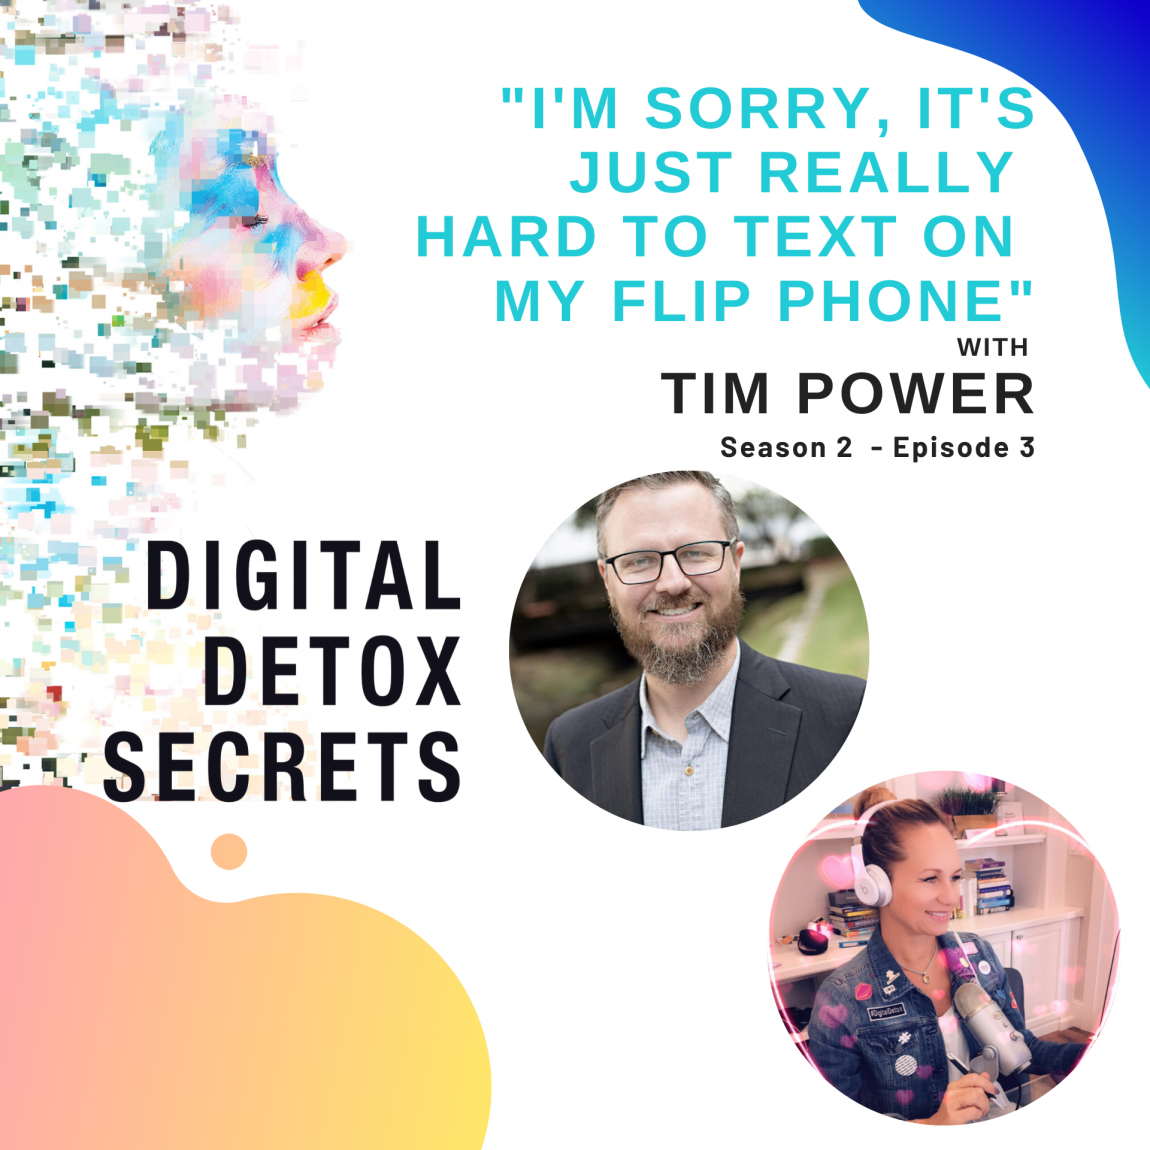 Tim Power